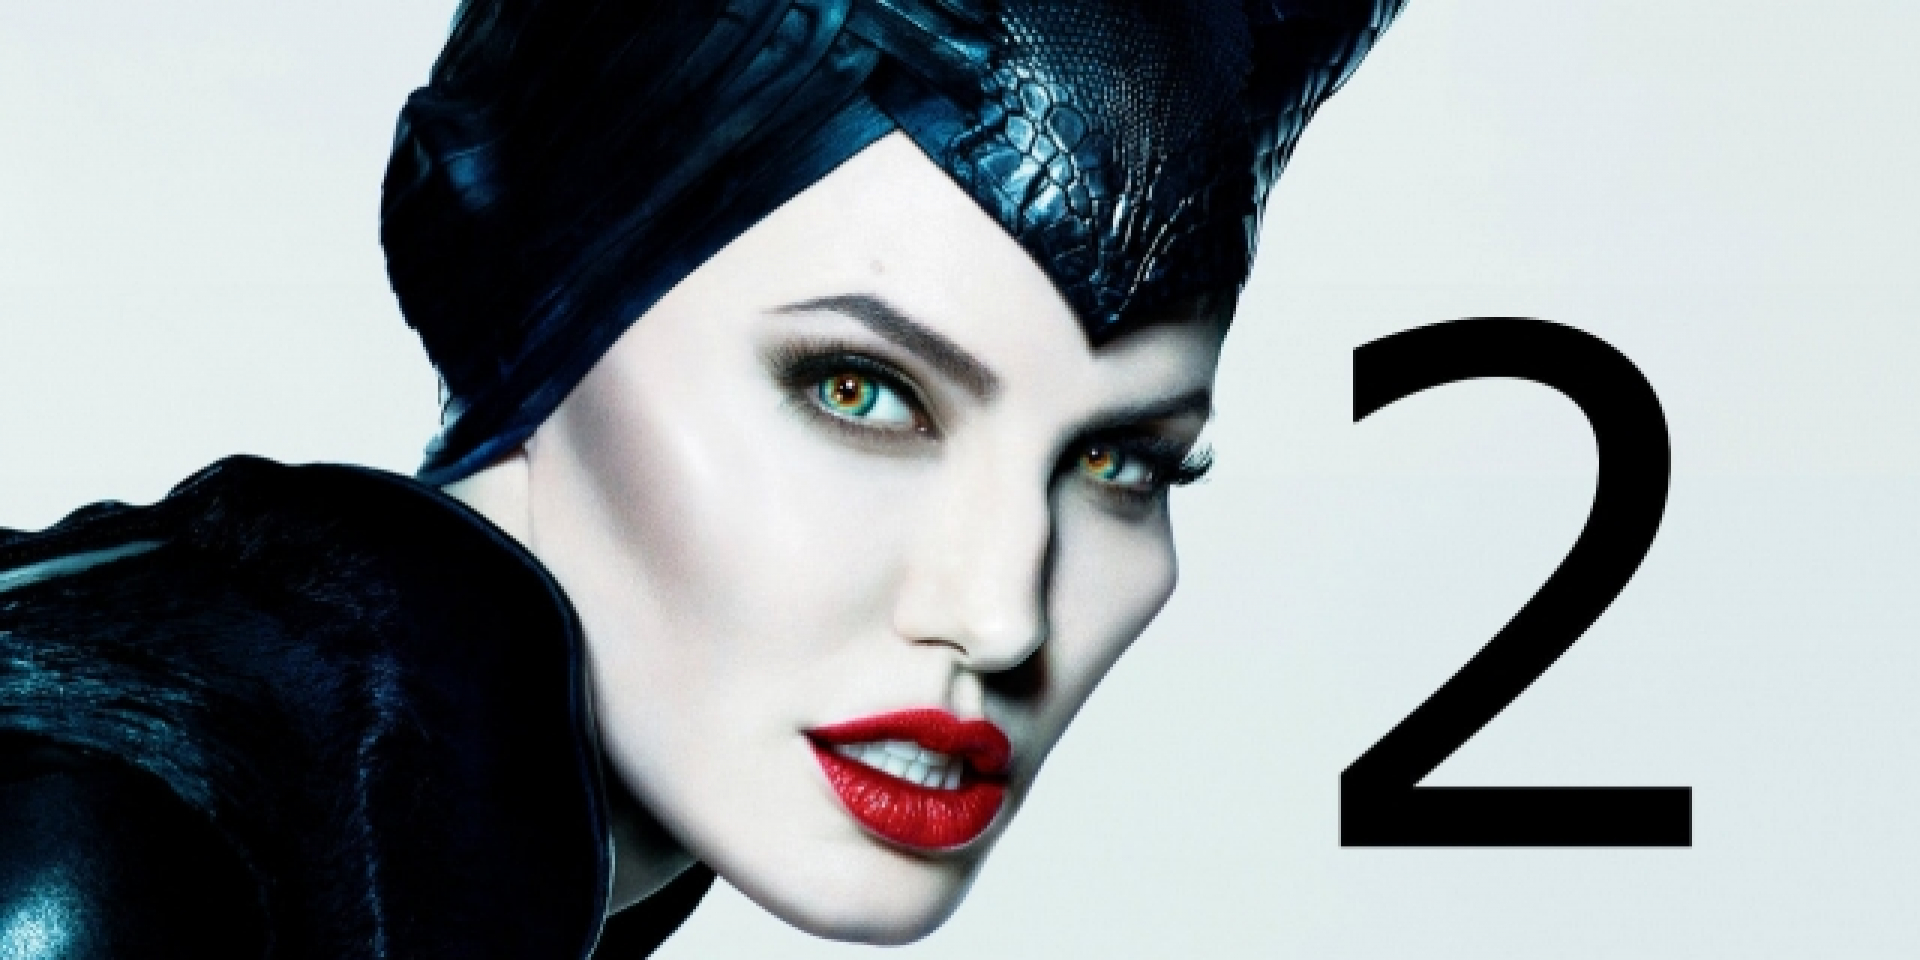 Full Cast And Plot Synopsis For Maleficent Ii Revealed As